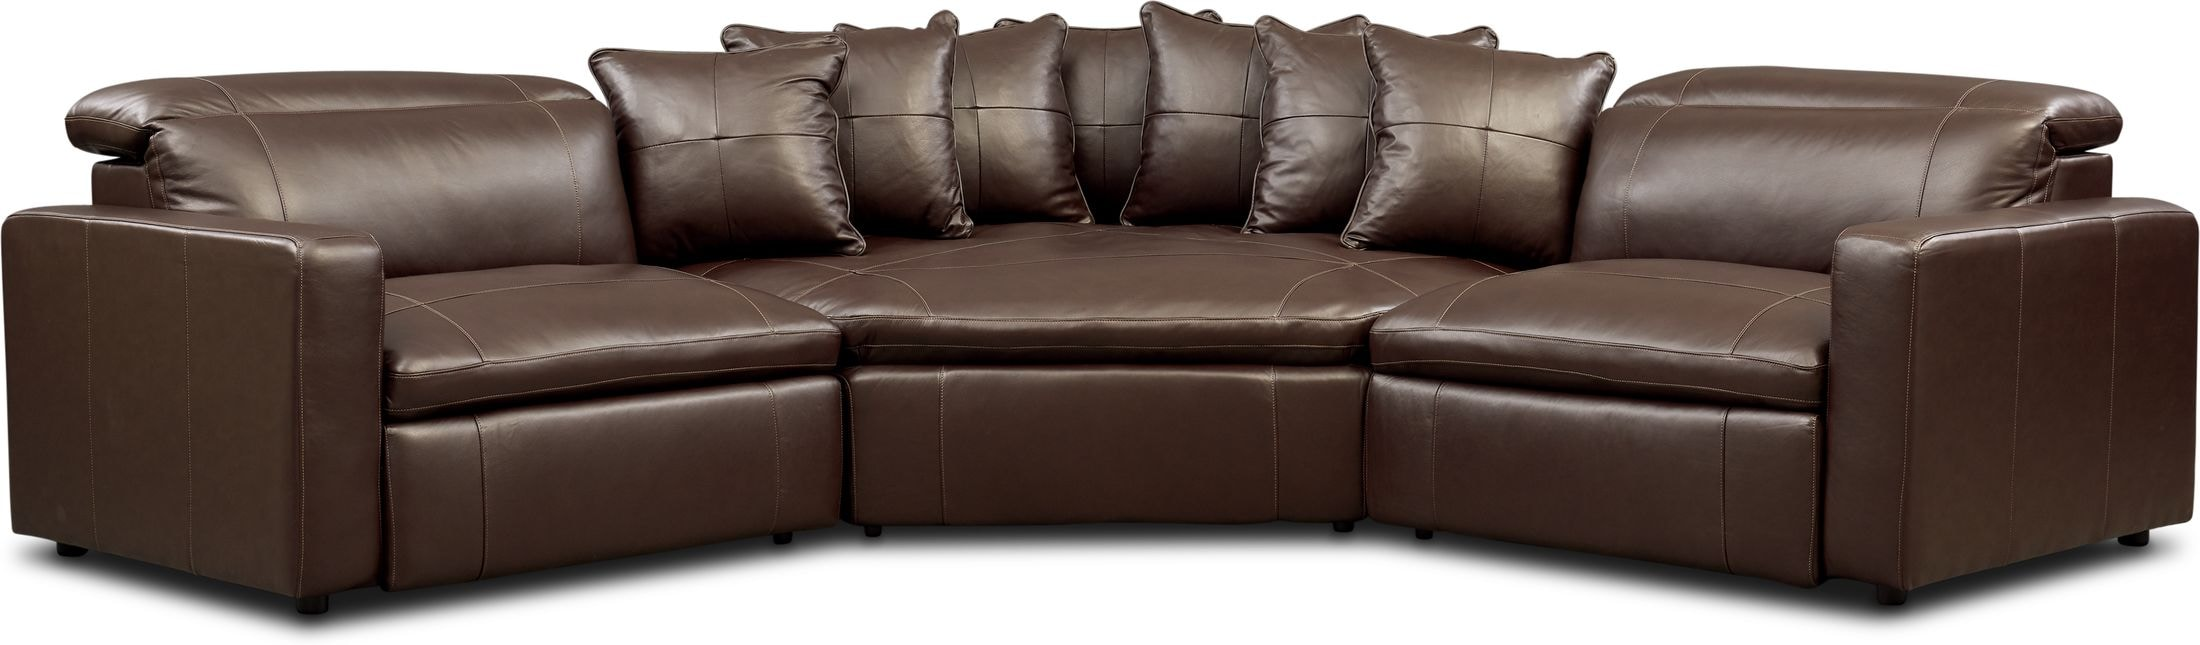 Living Room Furniture - Happy 3-Piece Dual-Power Reclining Sectional with 2 Reclining Seats and Cuddler